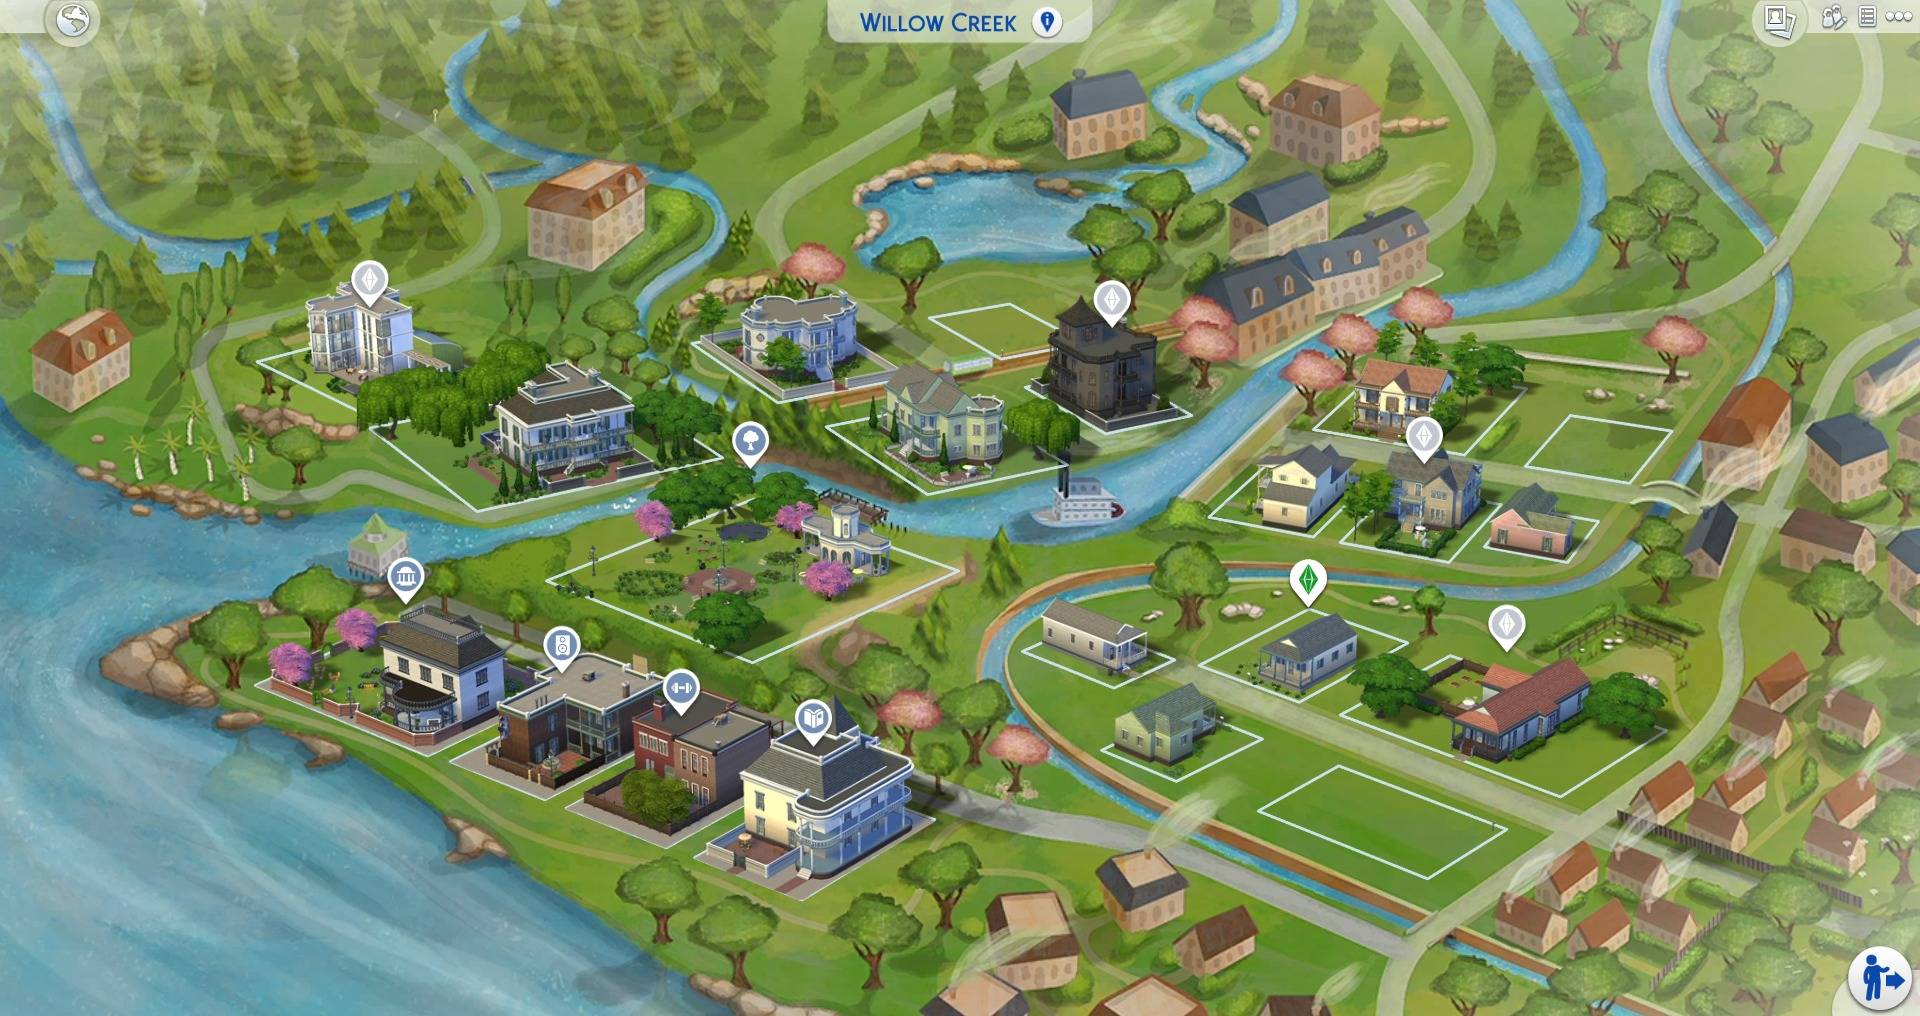 Download These Beautiful World Map Replacements for The Sims 4 | SimsVIP